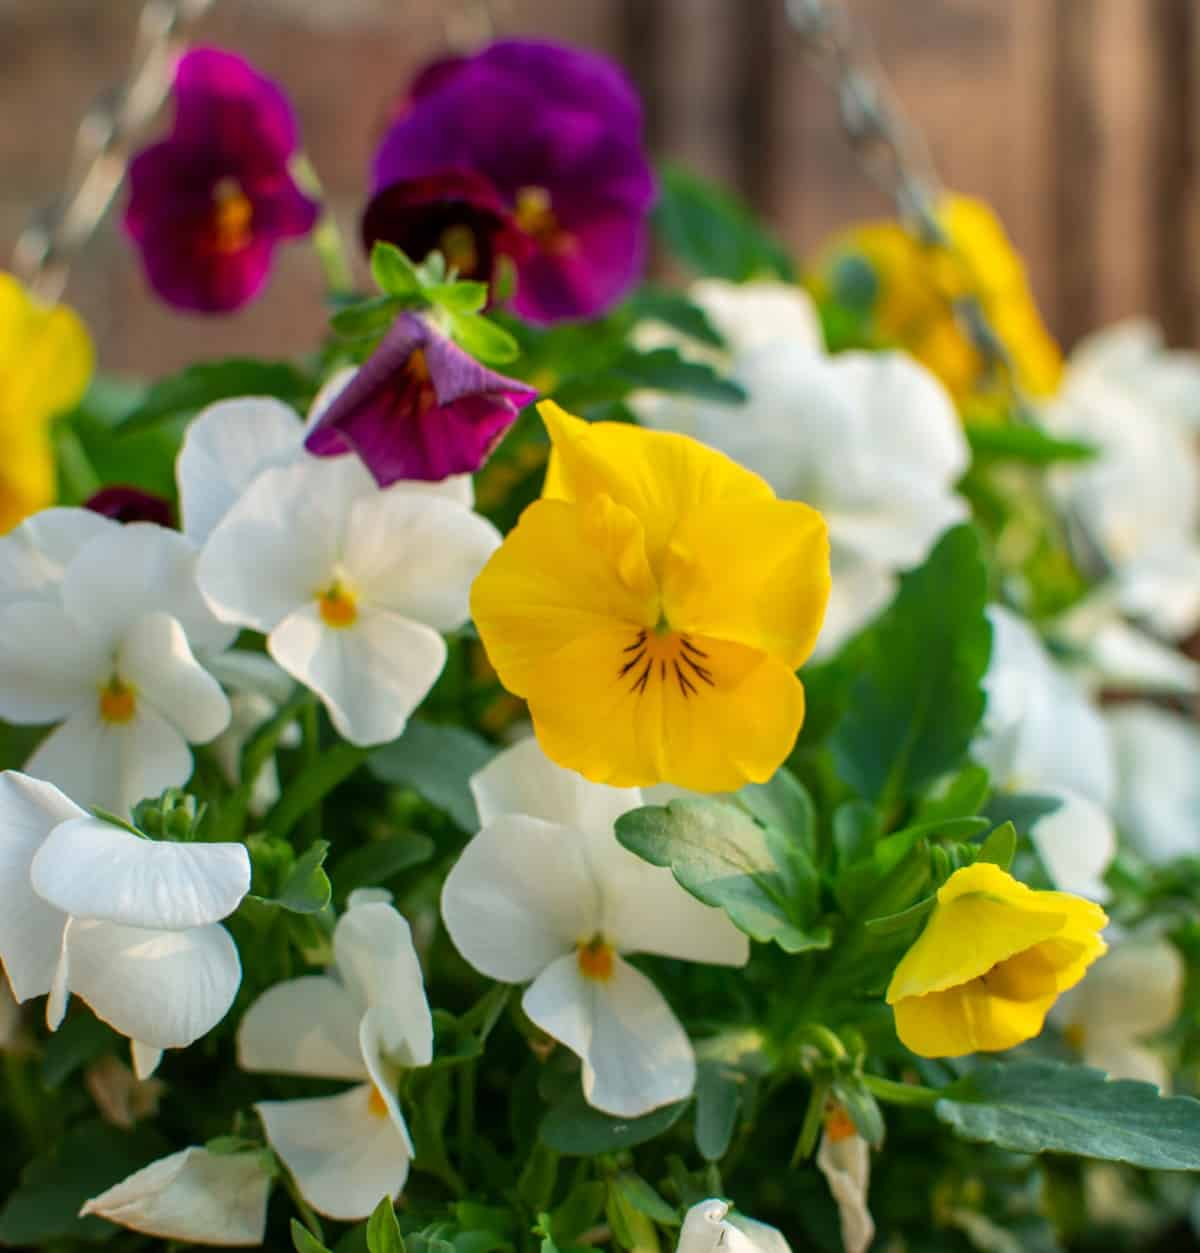 pansies grow well just about anywhere you plant them